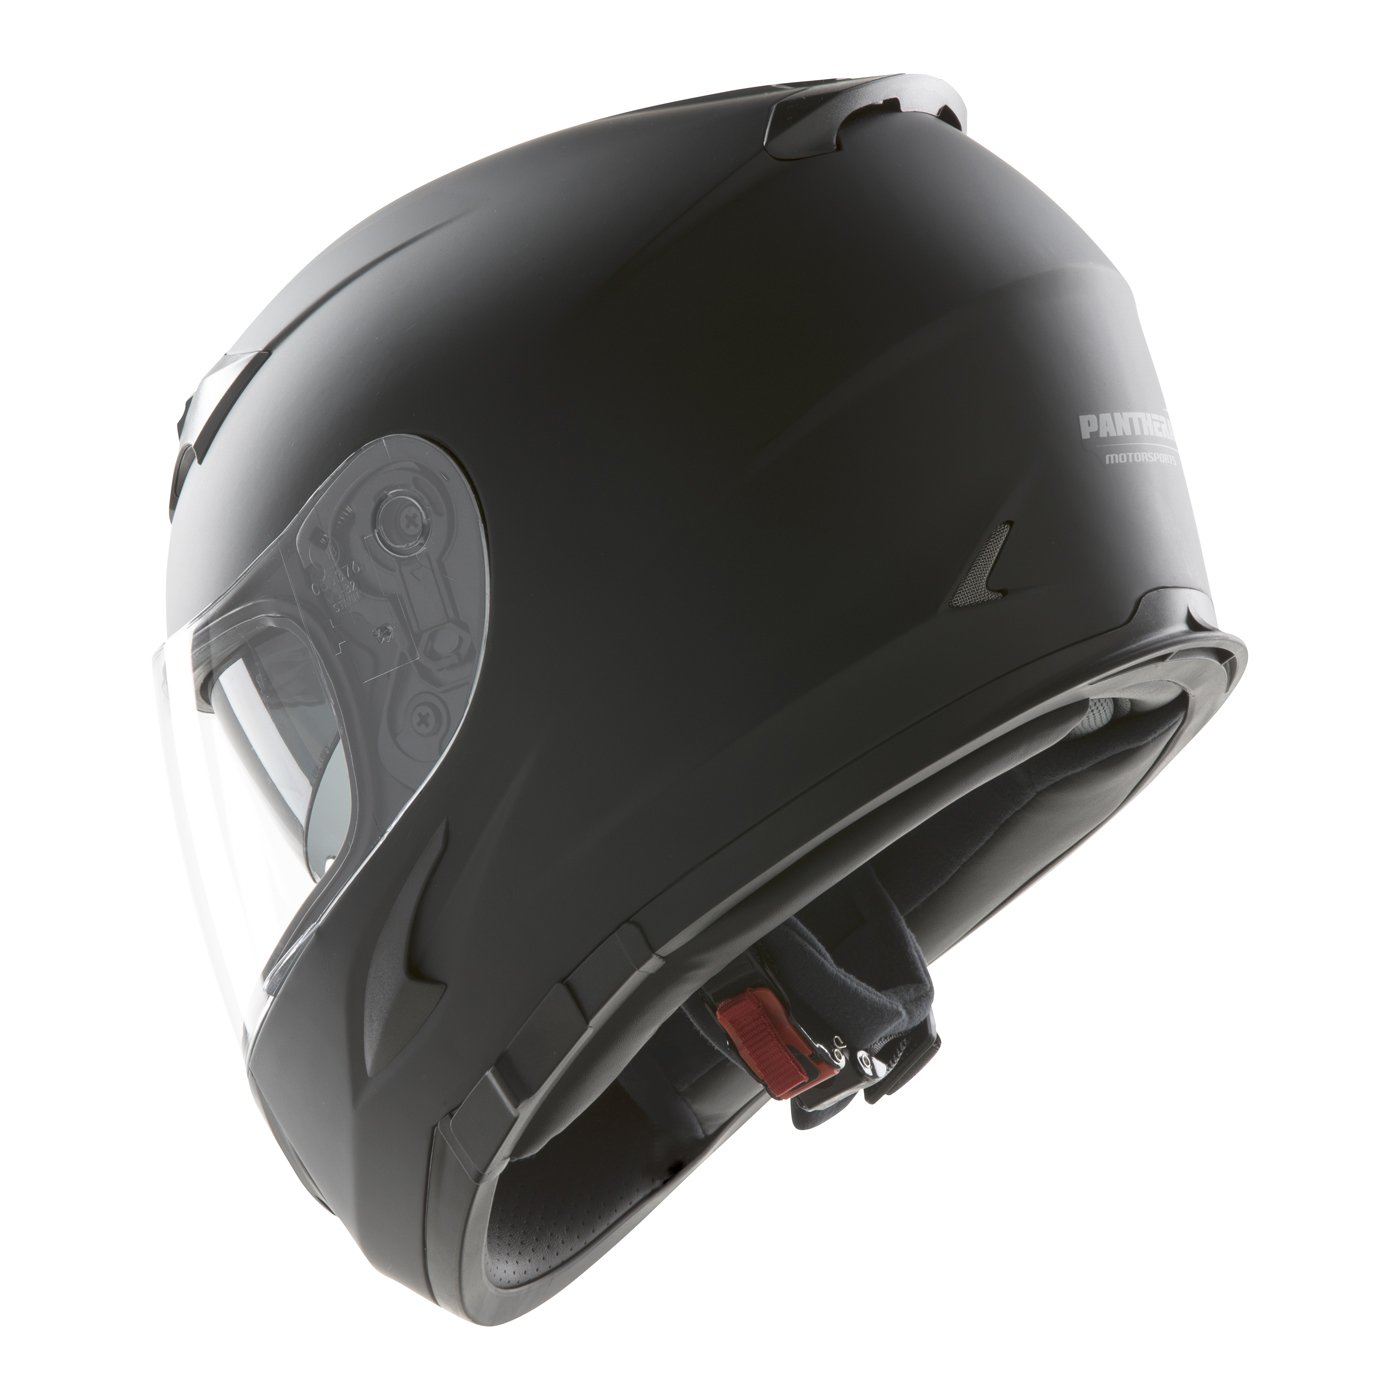 Panthera casco integrale Roadster nero opaco taille S